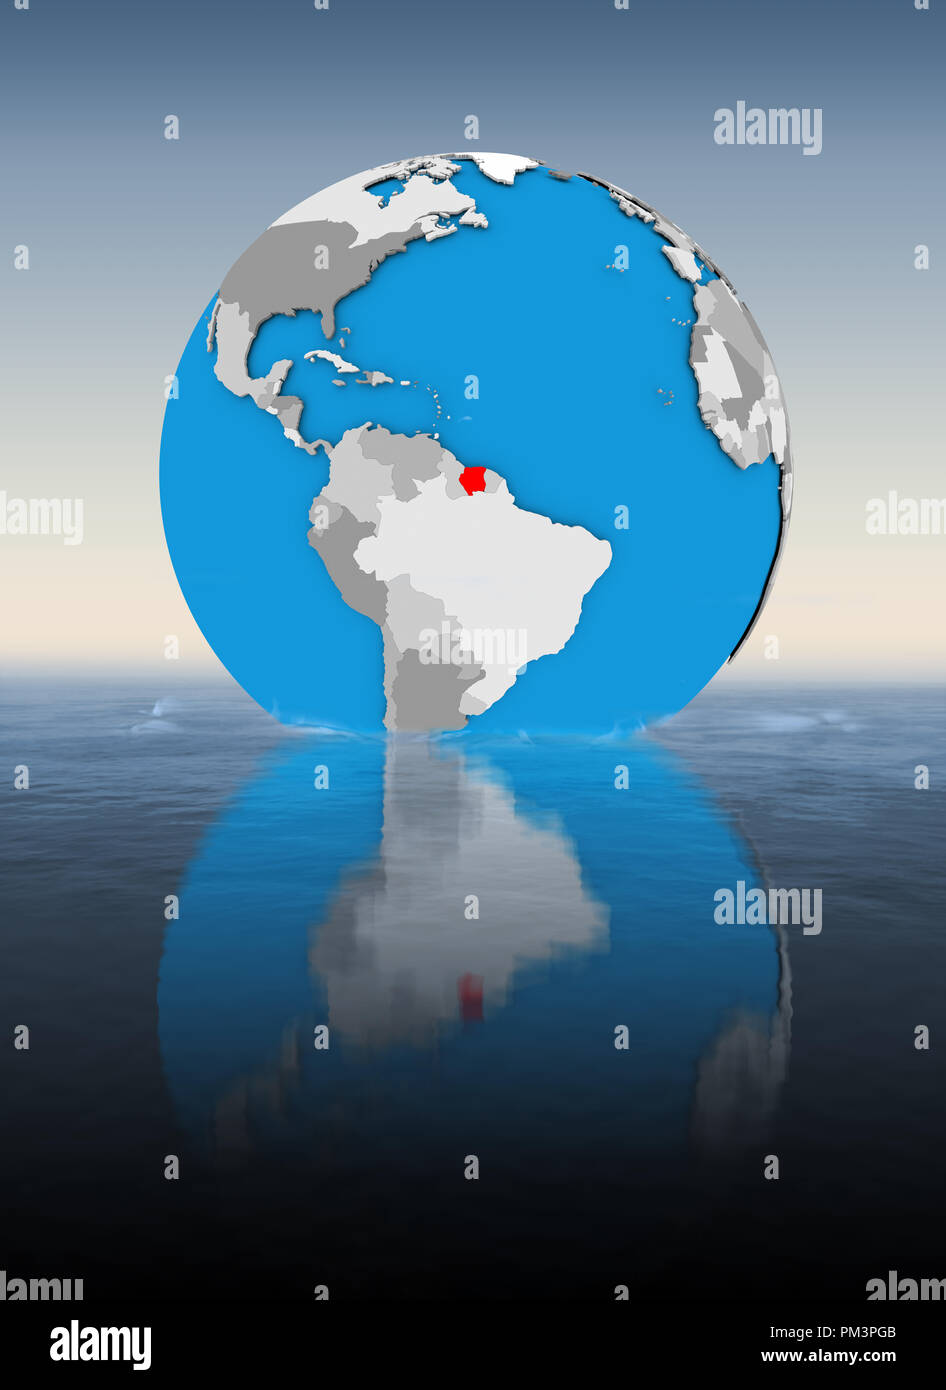 Suriname on globe floating in water. 3D illustration. Stock Photo